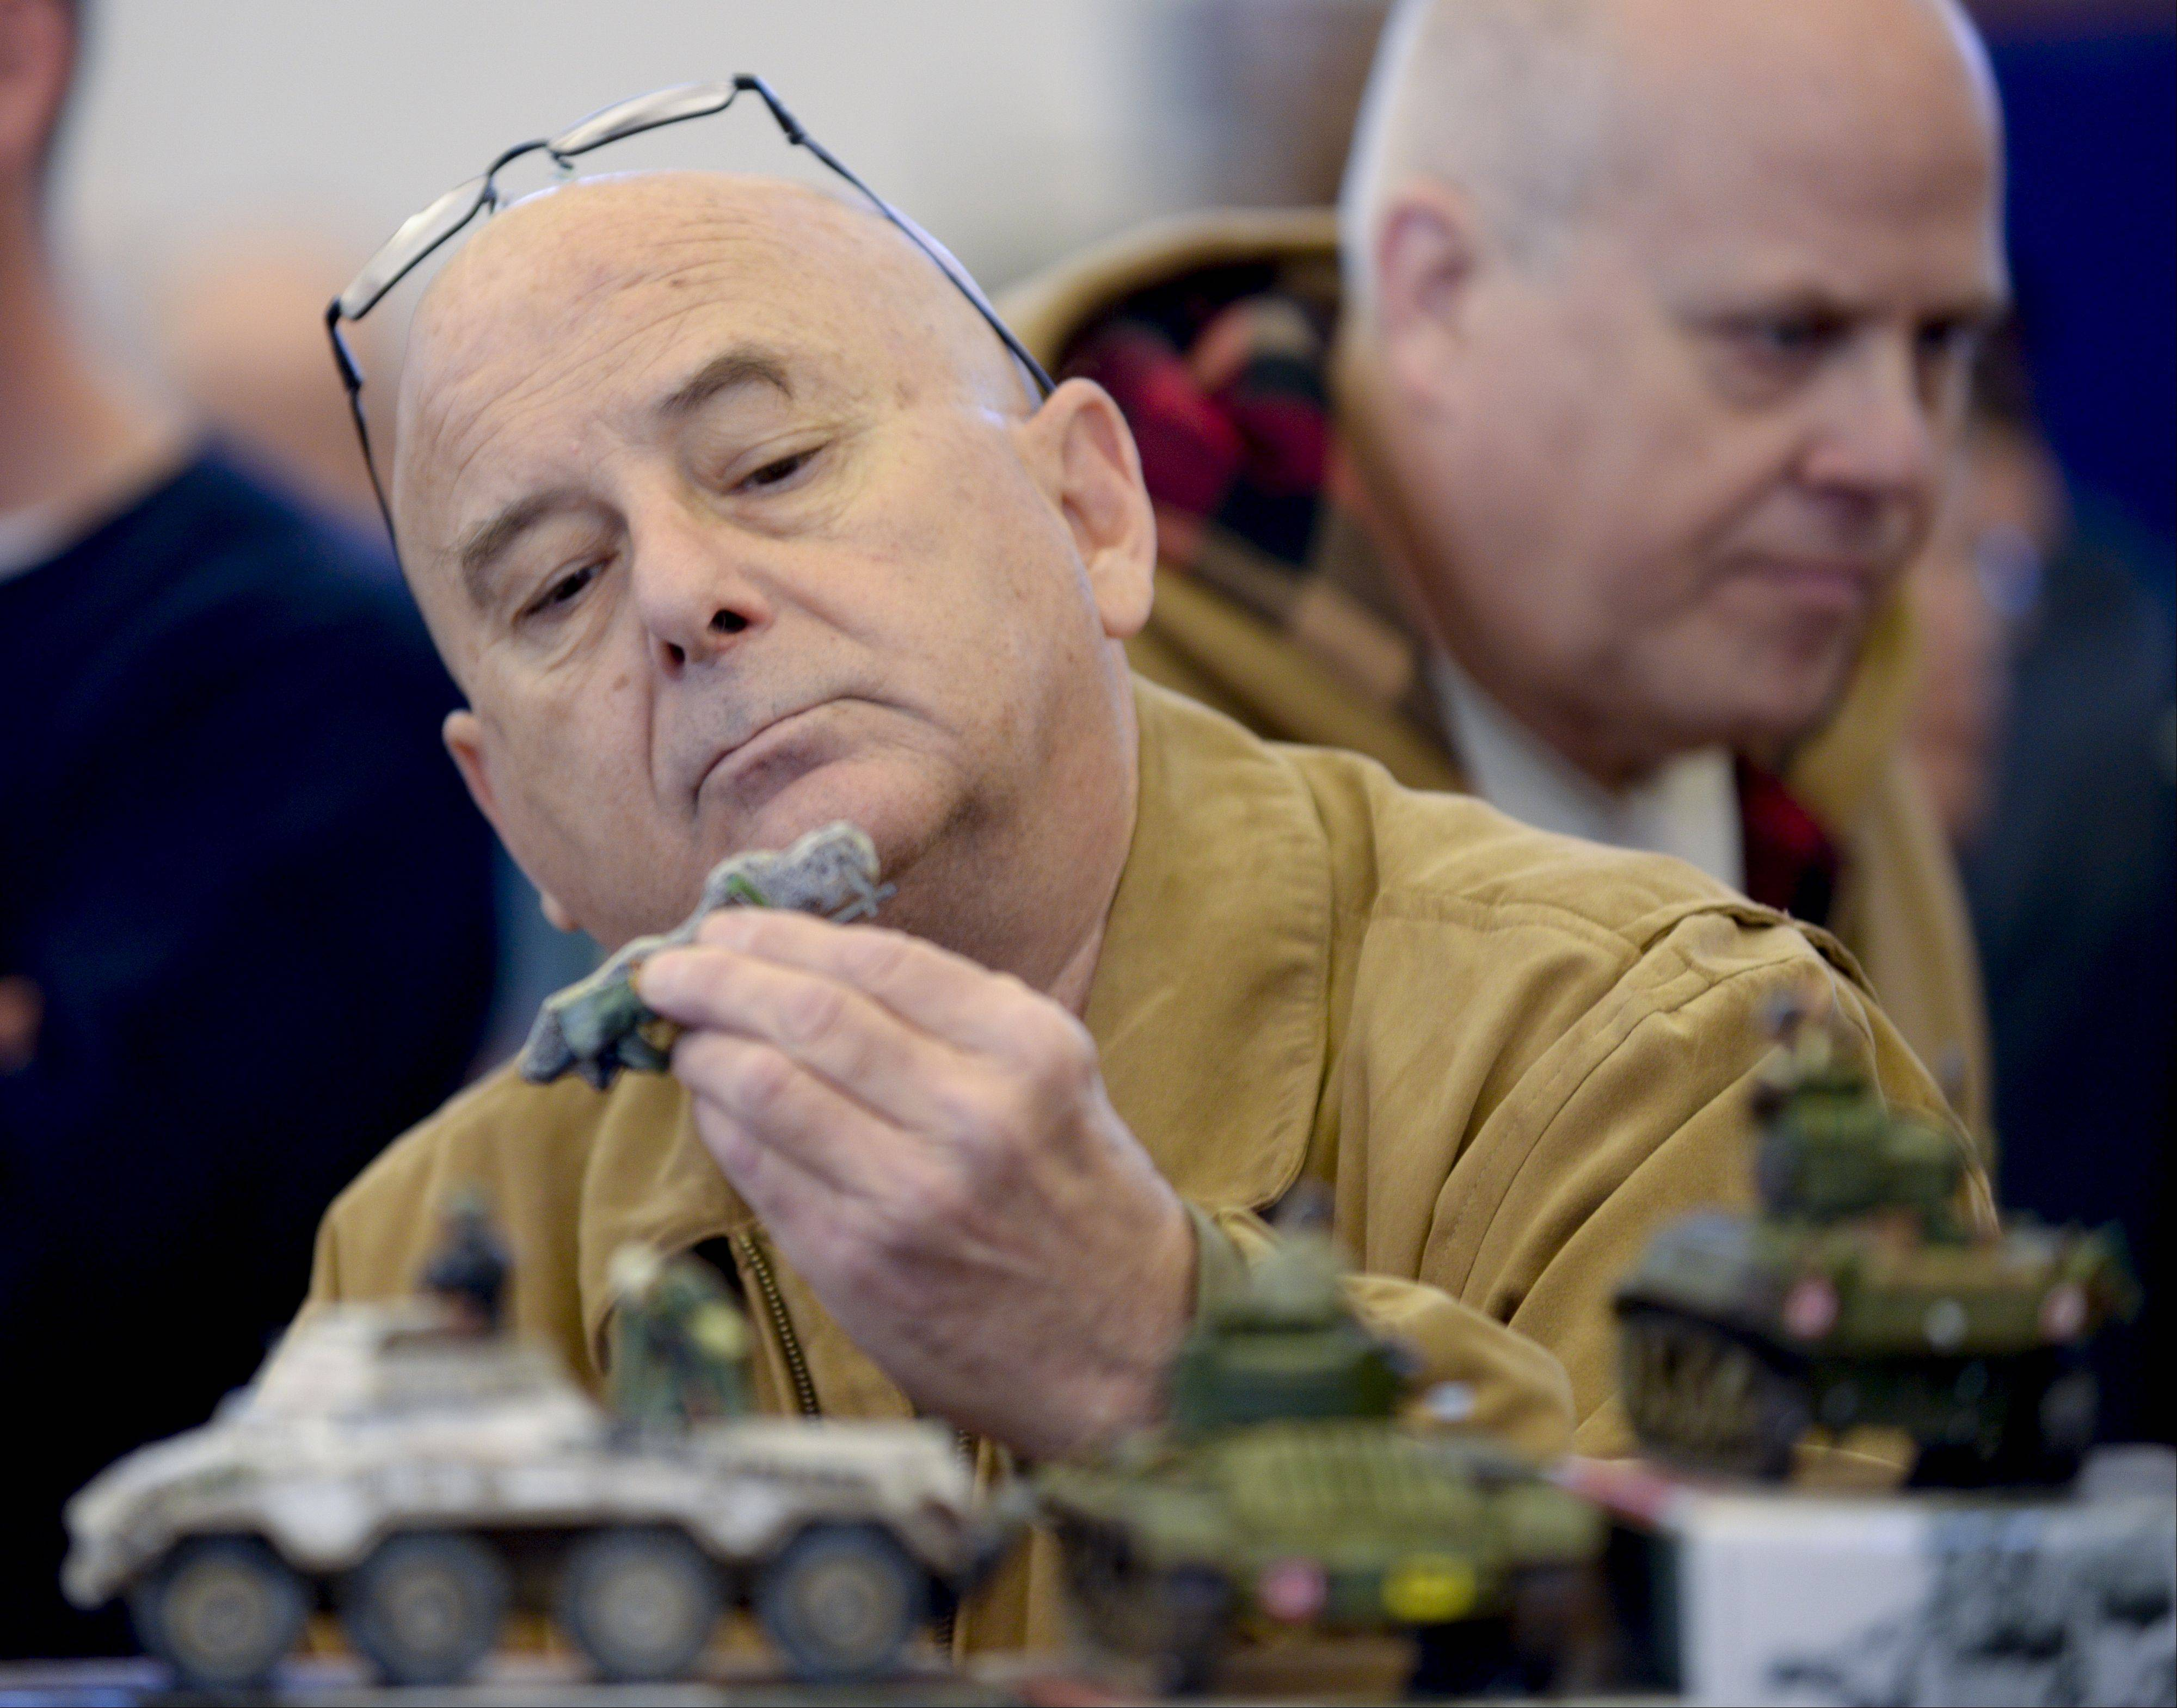 Tom Zinschlag of Bartlett buys some military figures at the 40th annual Antiques and Collectibles Toy and Doll Show at the Kane County Fairgrounds Sunday.